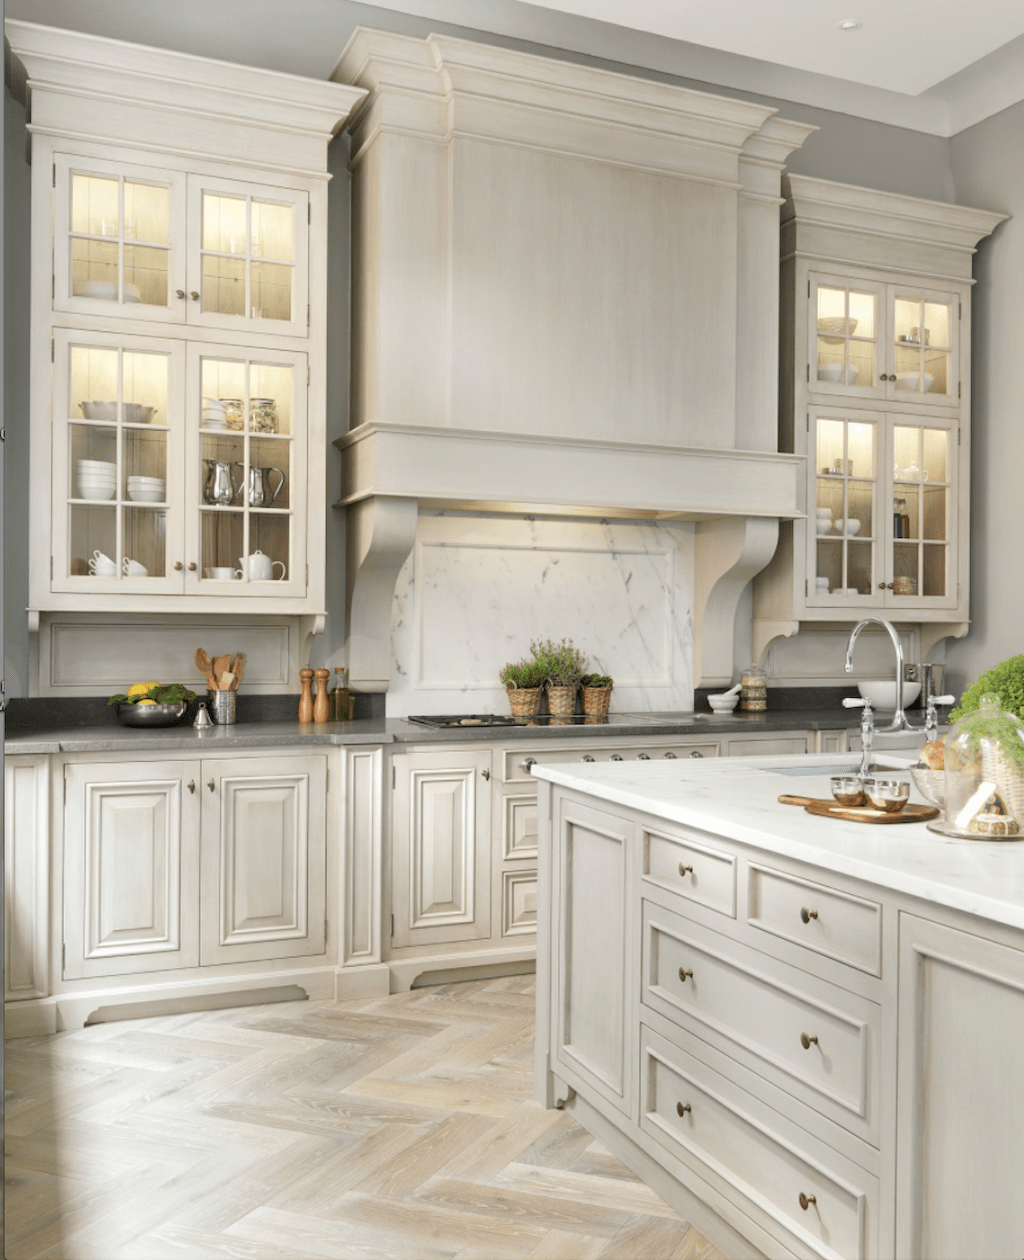 Kitchen Ideas With Off White Cabinets: Best Off White Kitchen Cabinets Design Ideas (75)